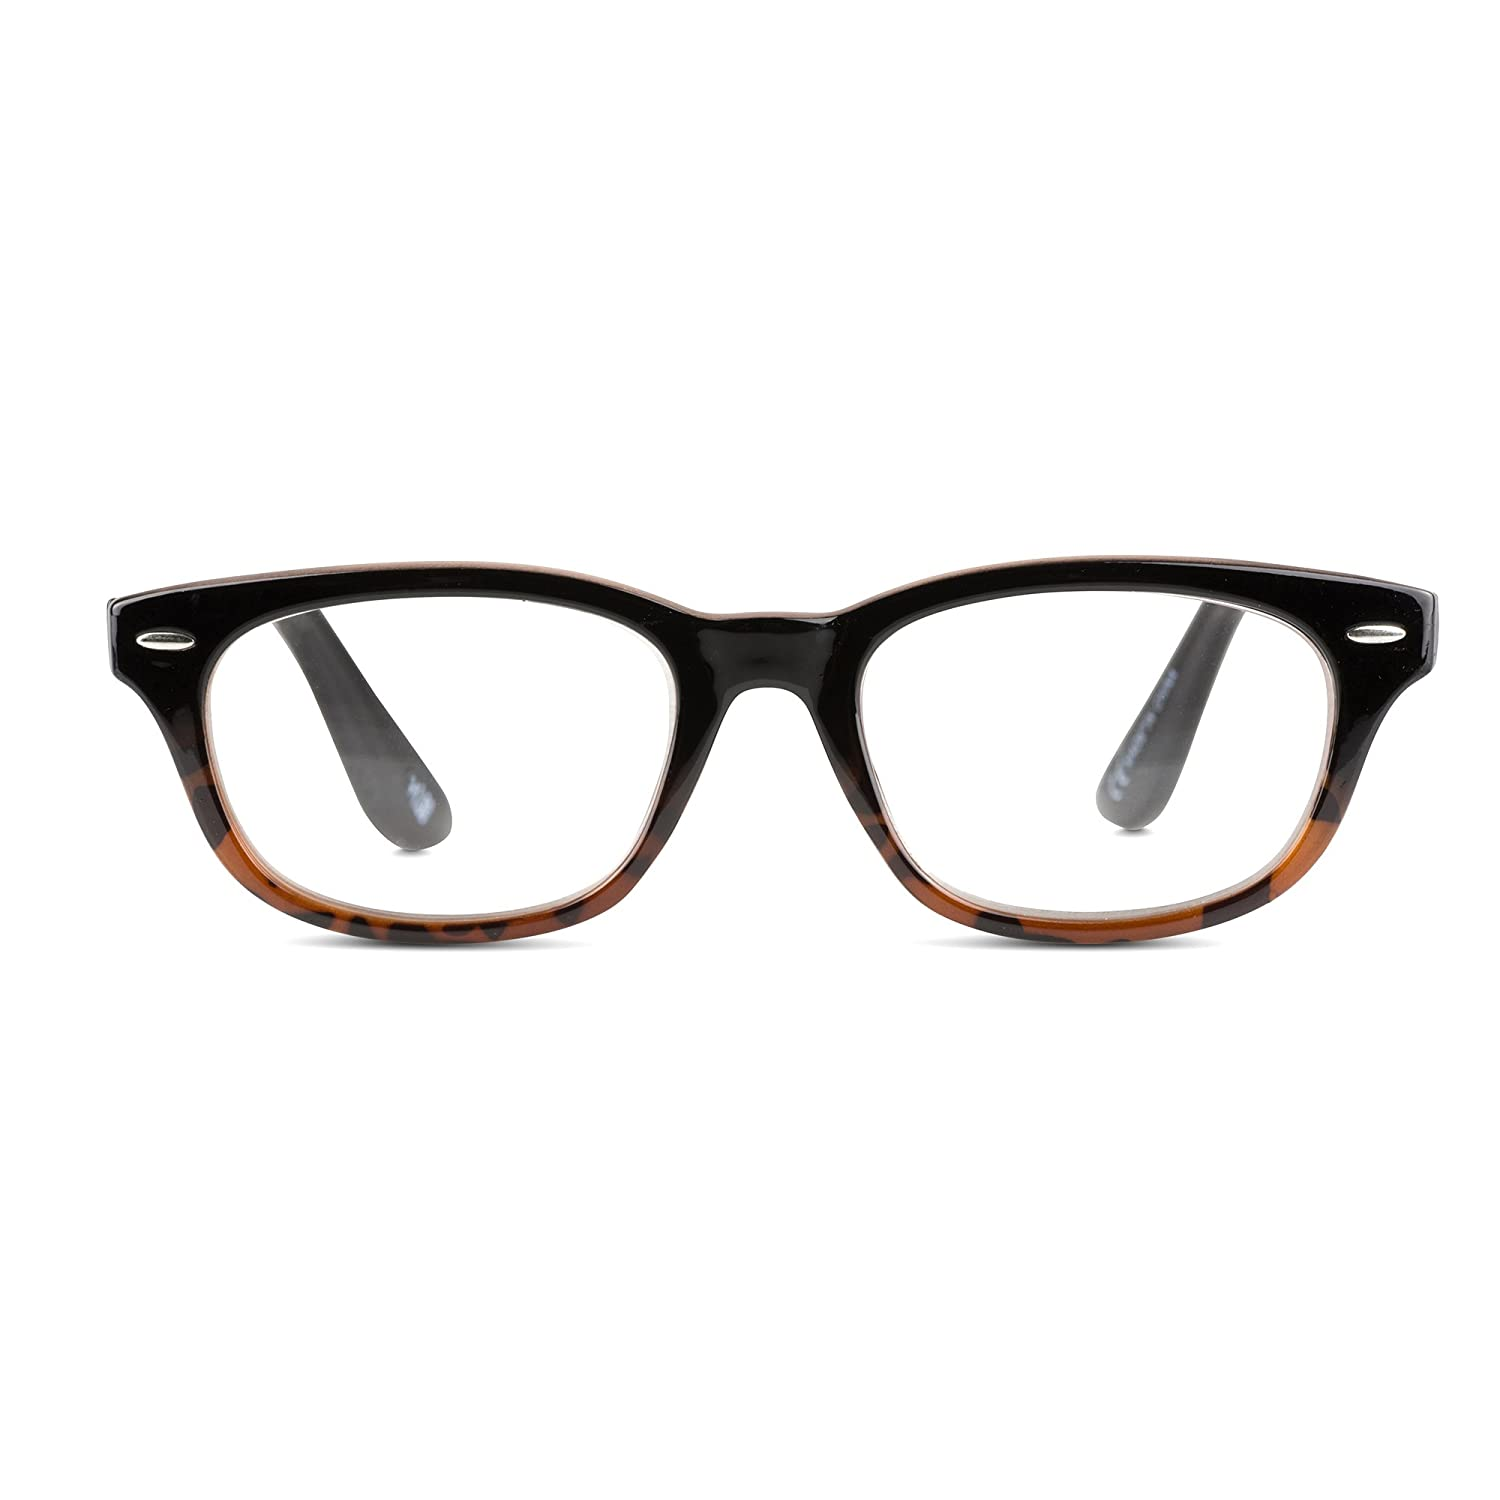 5f42fb7d1c3e Amazon.com  Reading Glasses for Women and Men  Designer Readers with  Stylish Frames  Clothing